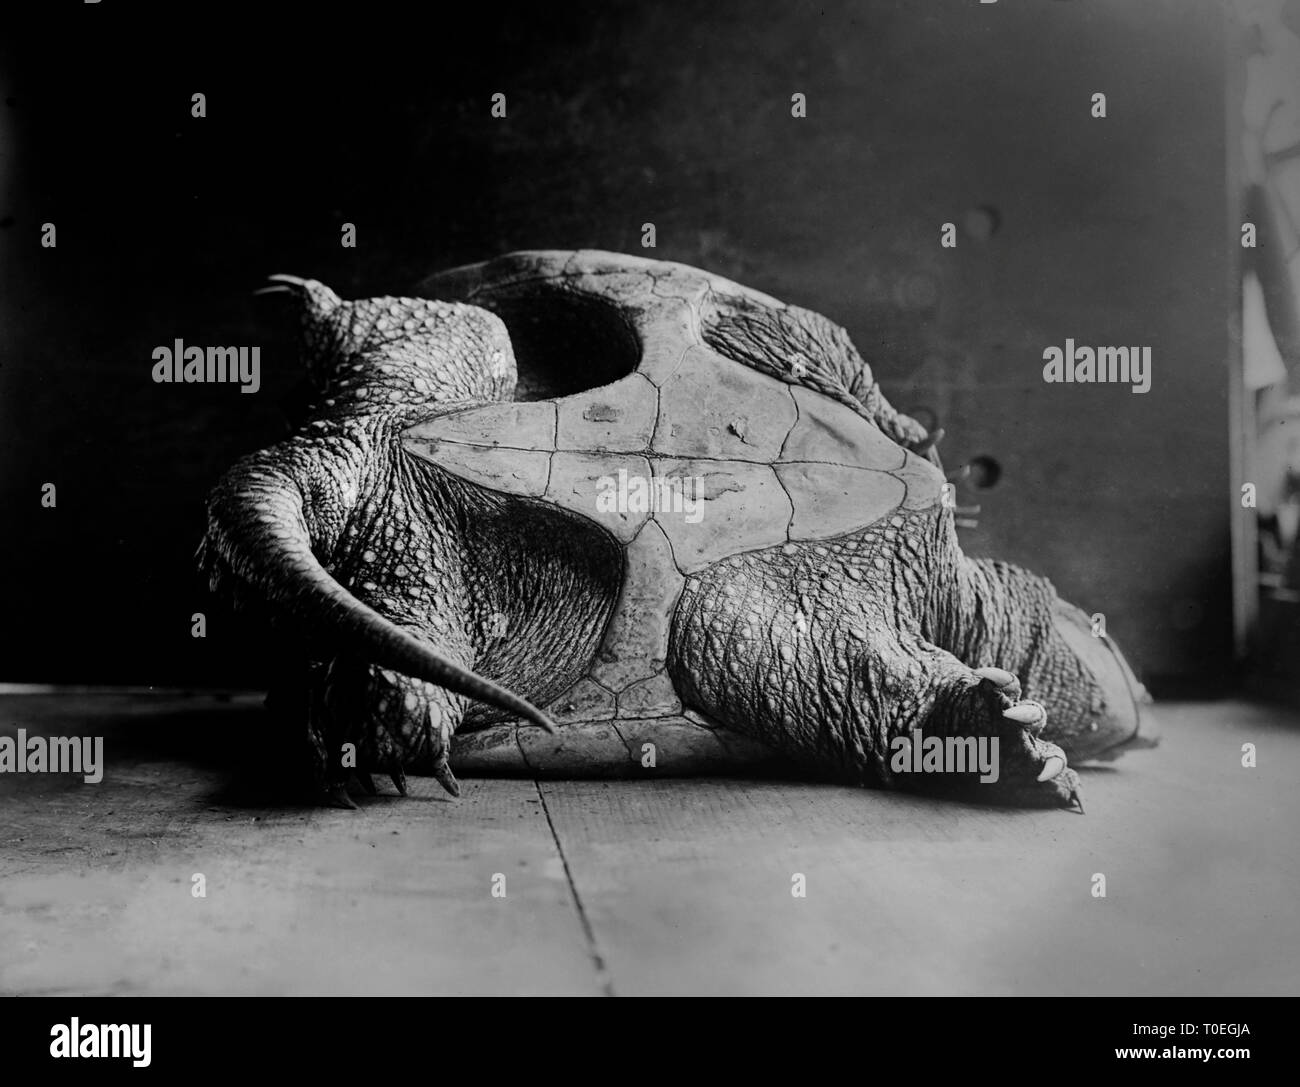 A large snapping turtle lays on its shell on the floor, ca